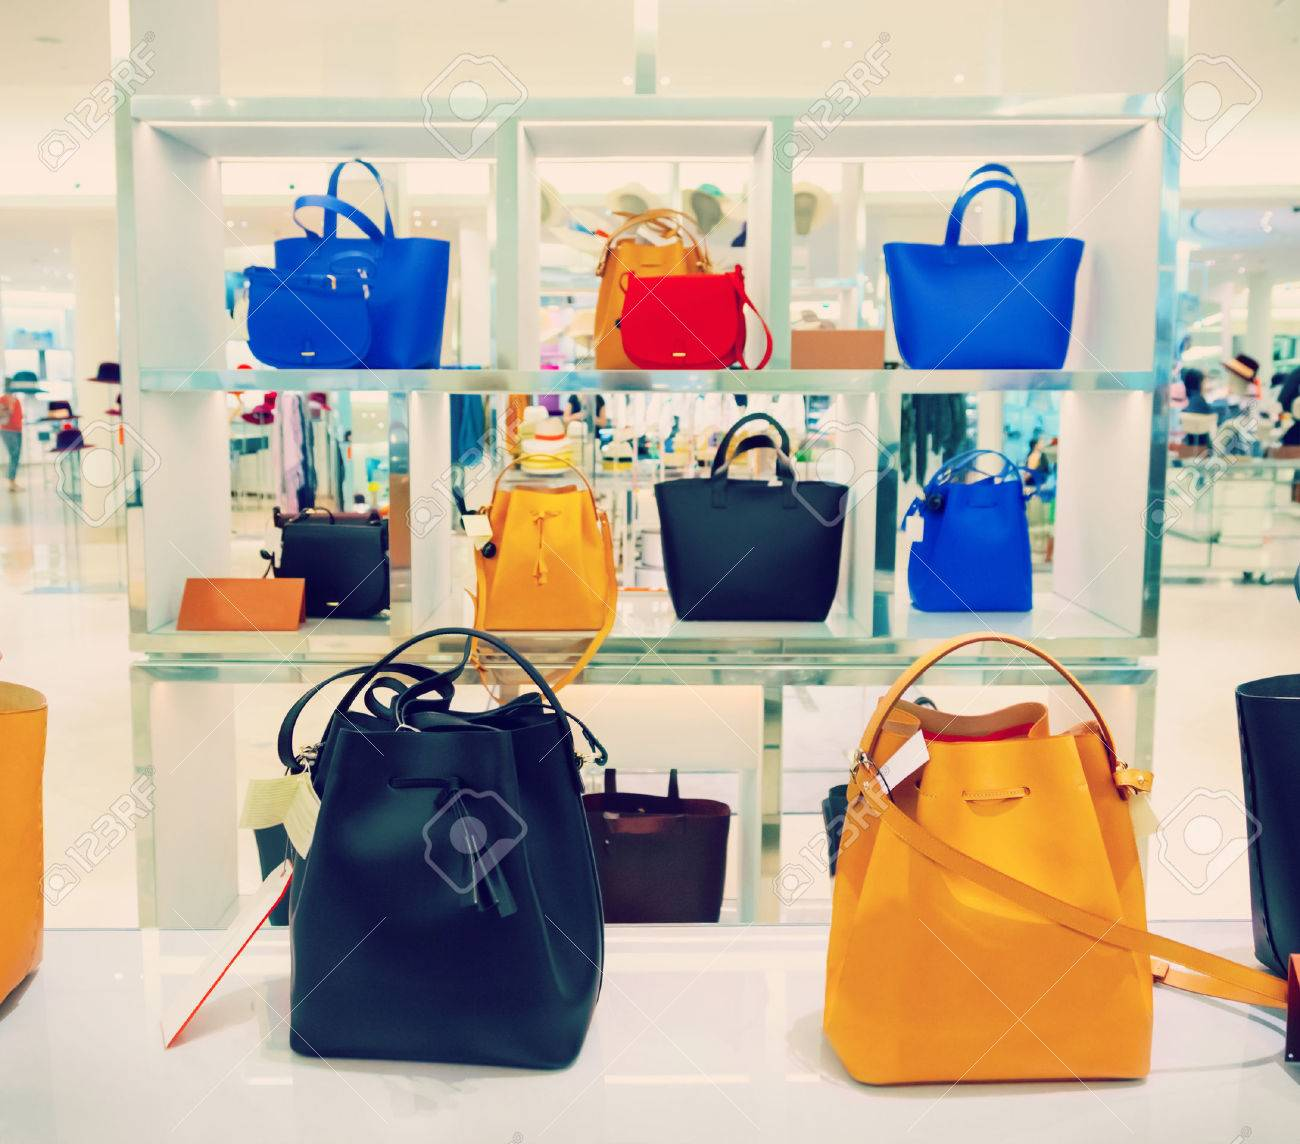 Shop window with bags and shoes - 49104109